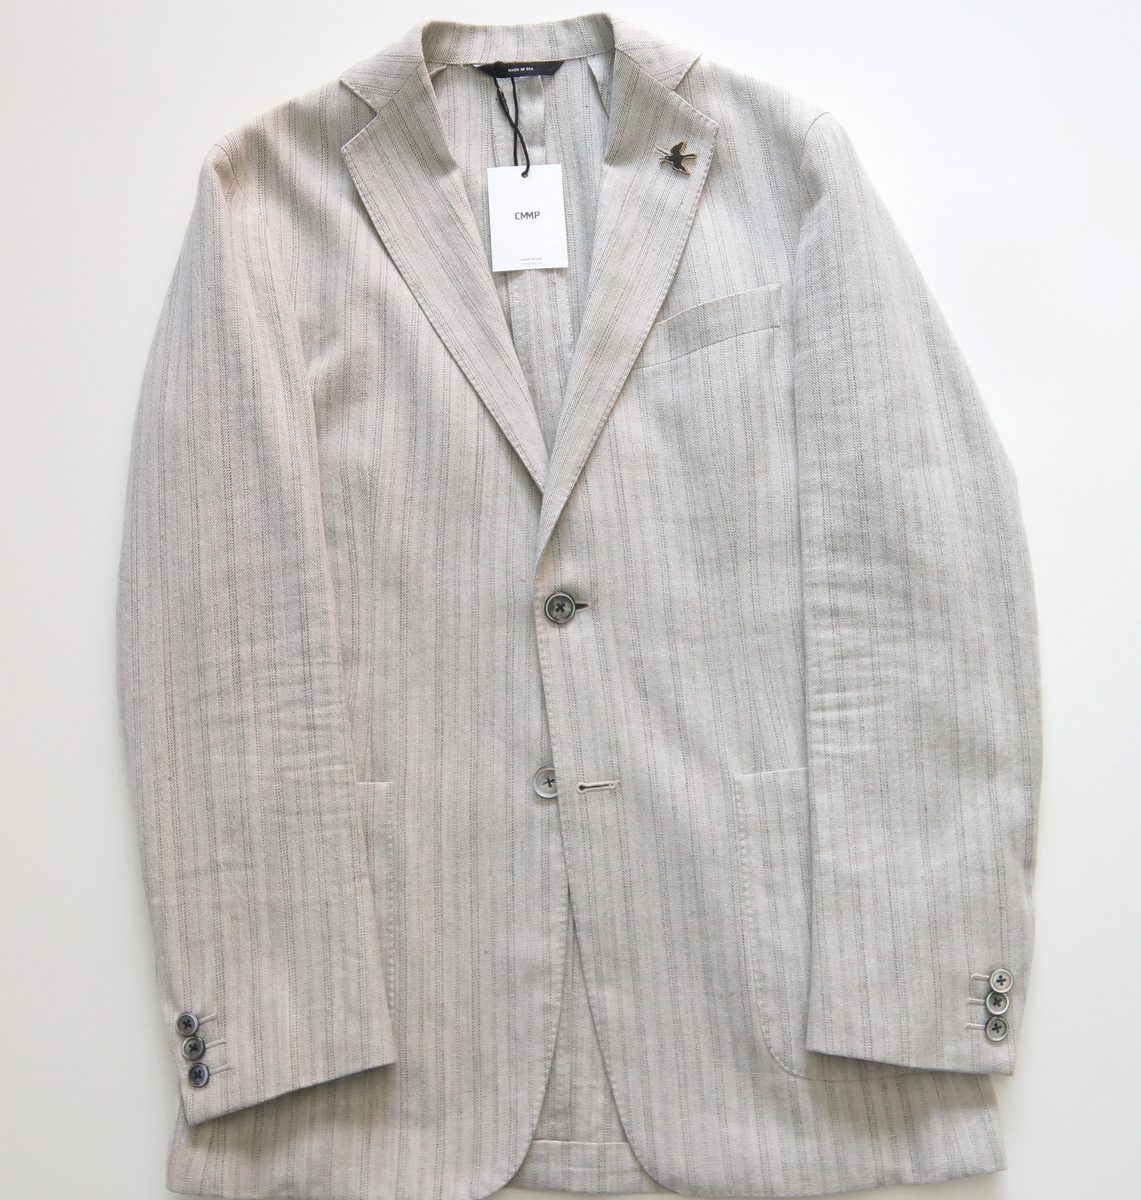 Tan / Grey Cotton Blend Blazer